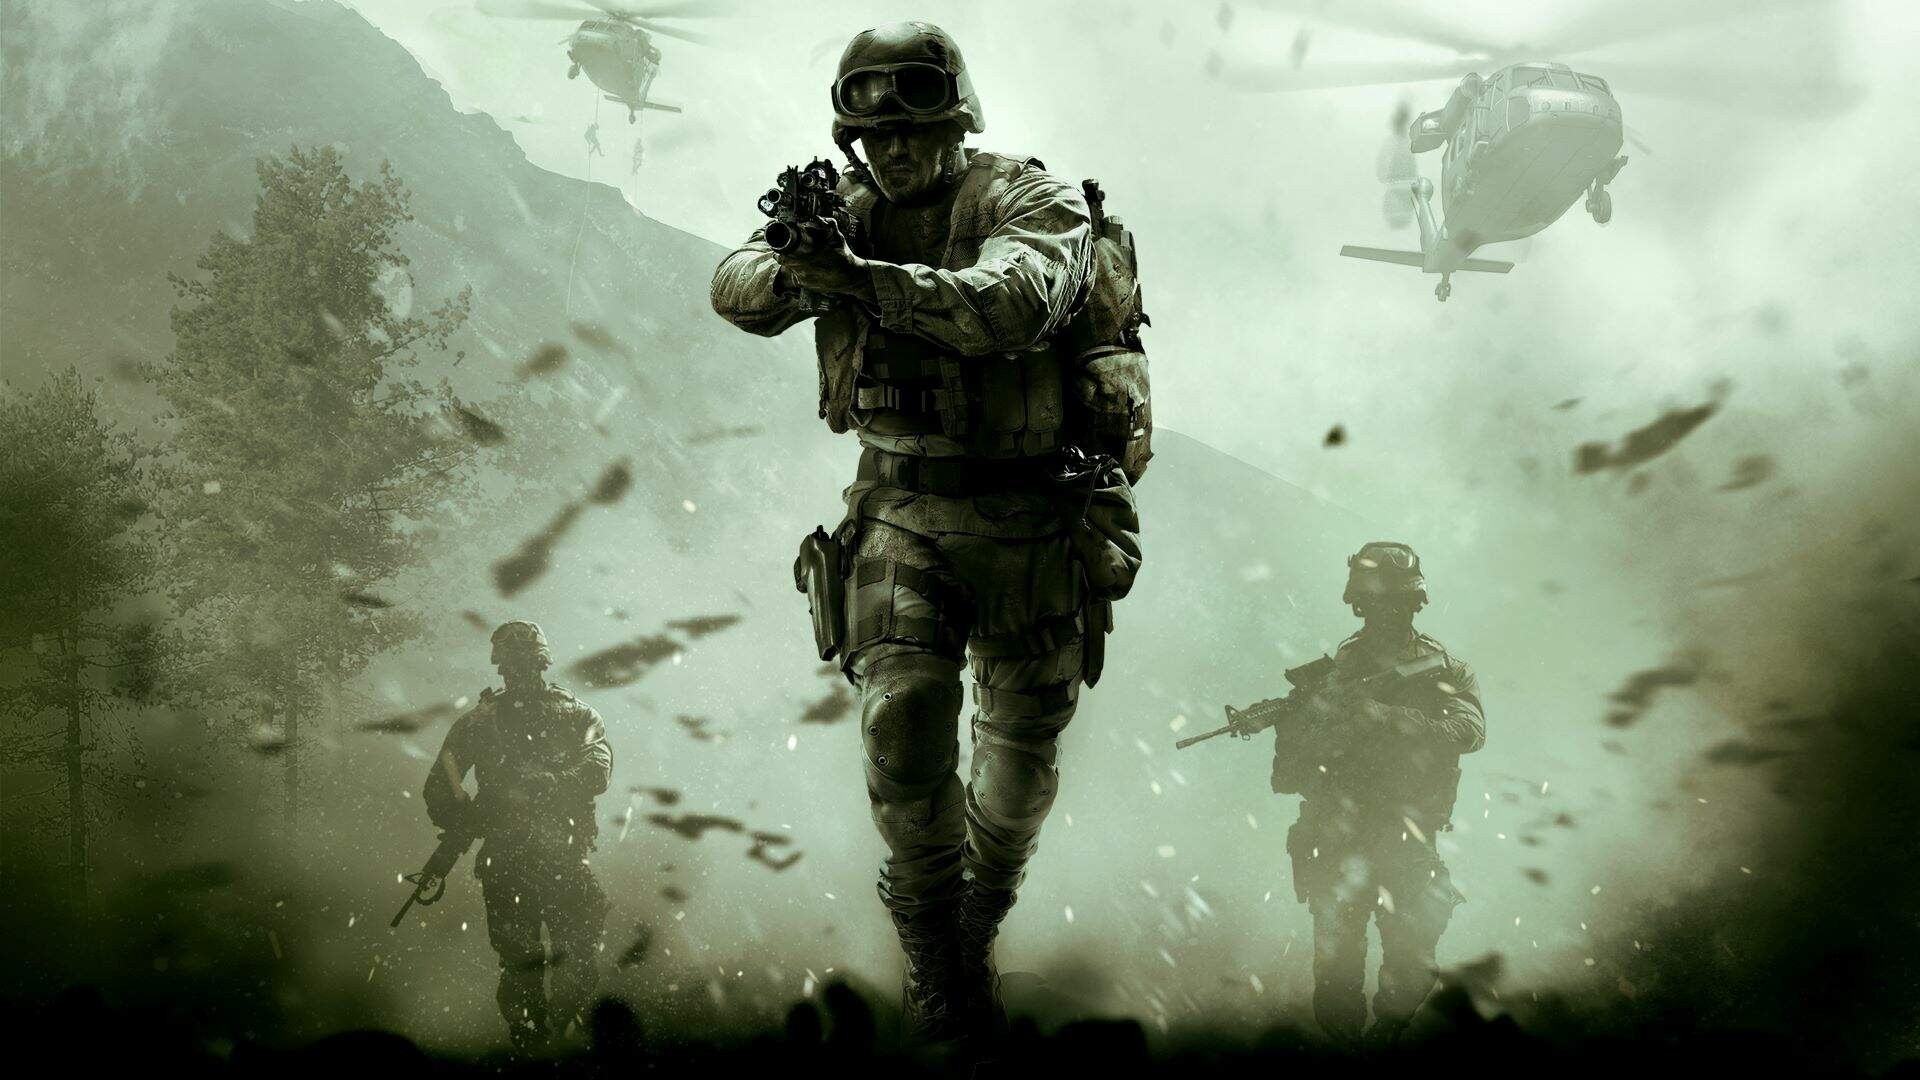 March's Free PS Plus Games Includes the Coveted Standalone Version of Call of Duty: Modern Warfare Remastered